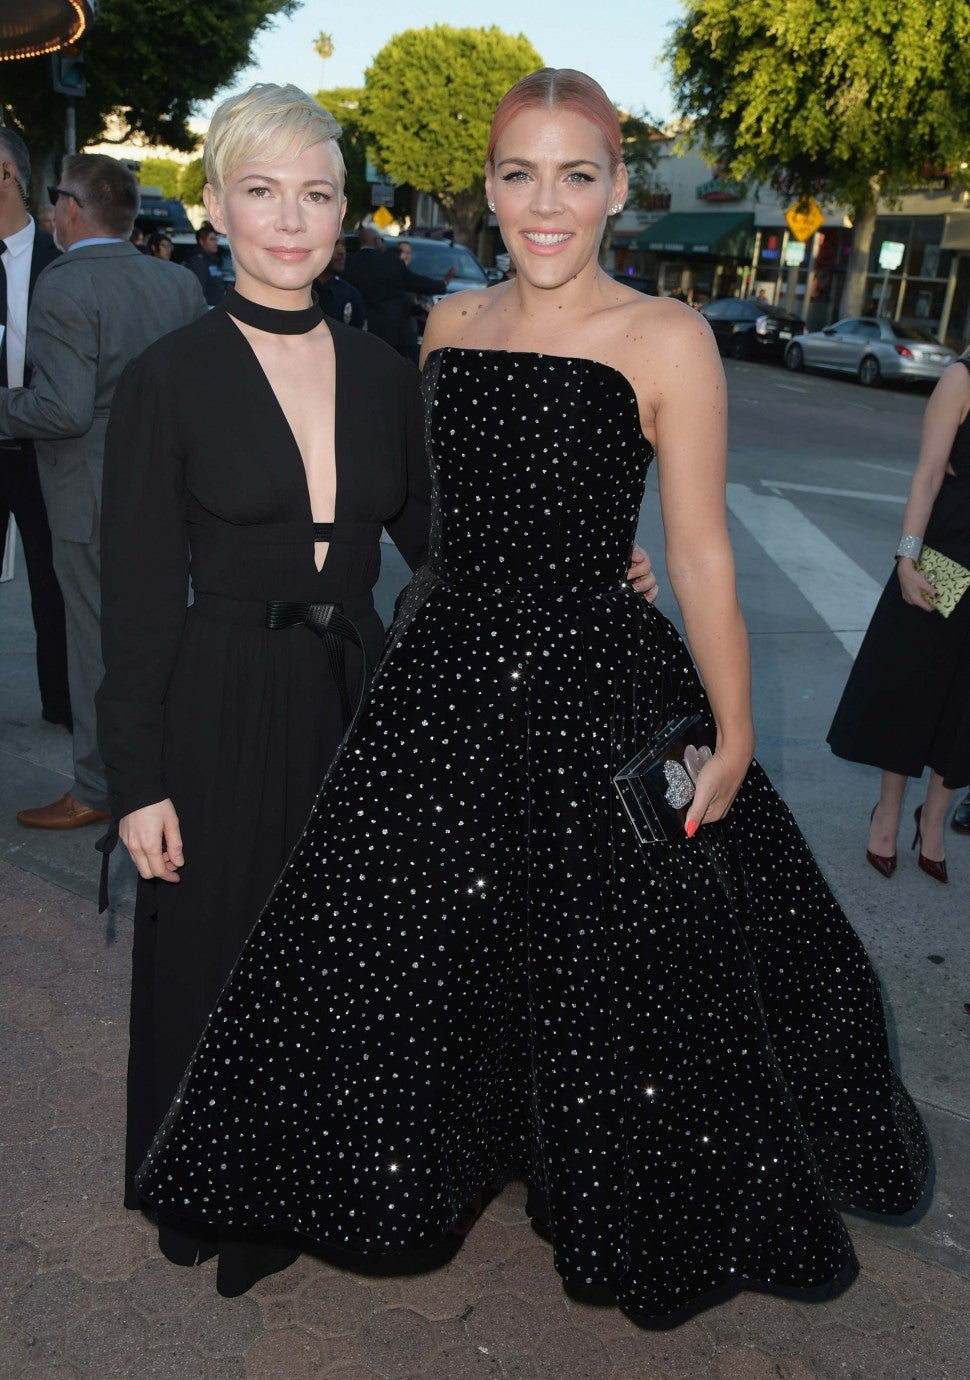 Busy Philipps and Michelle Williams at the premiere of 'I Feel Pretty' in LA on April 17